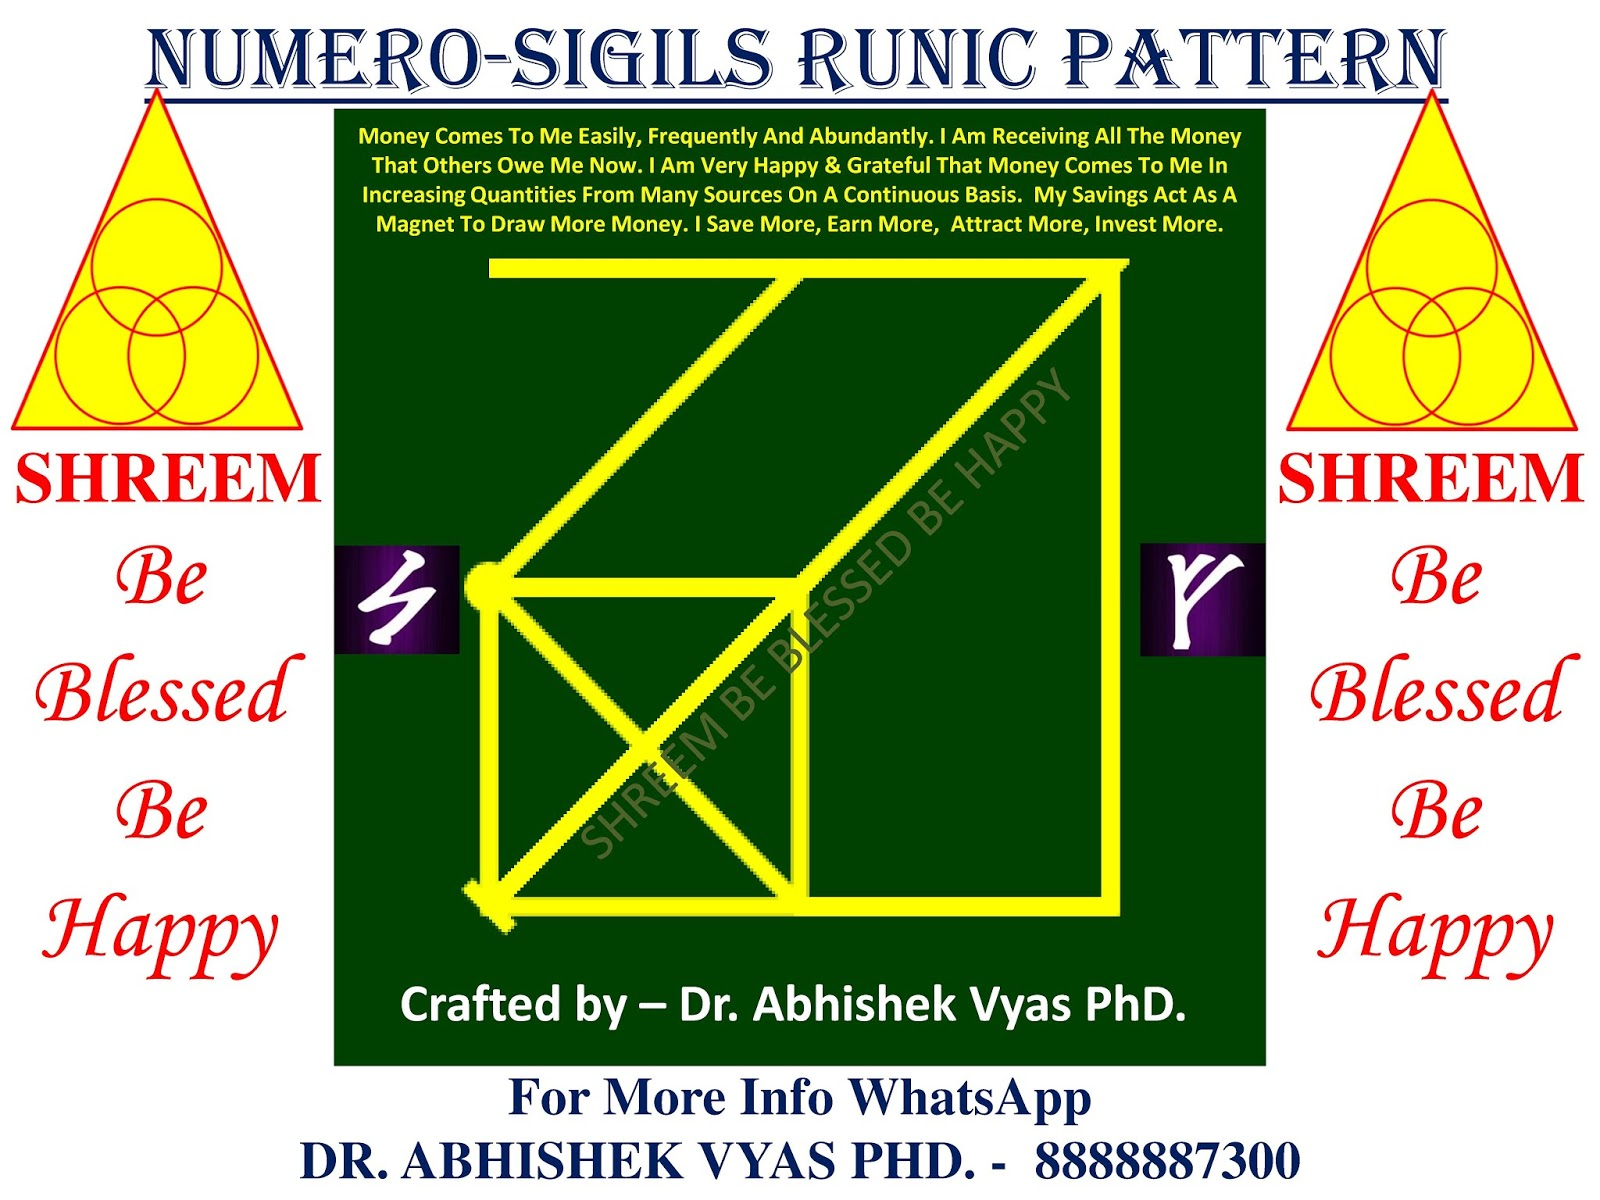 ☣Free Universal Numero-Sigil Runic Pattern For RECEIVING MONEY FROM